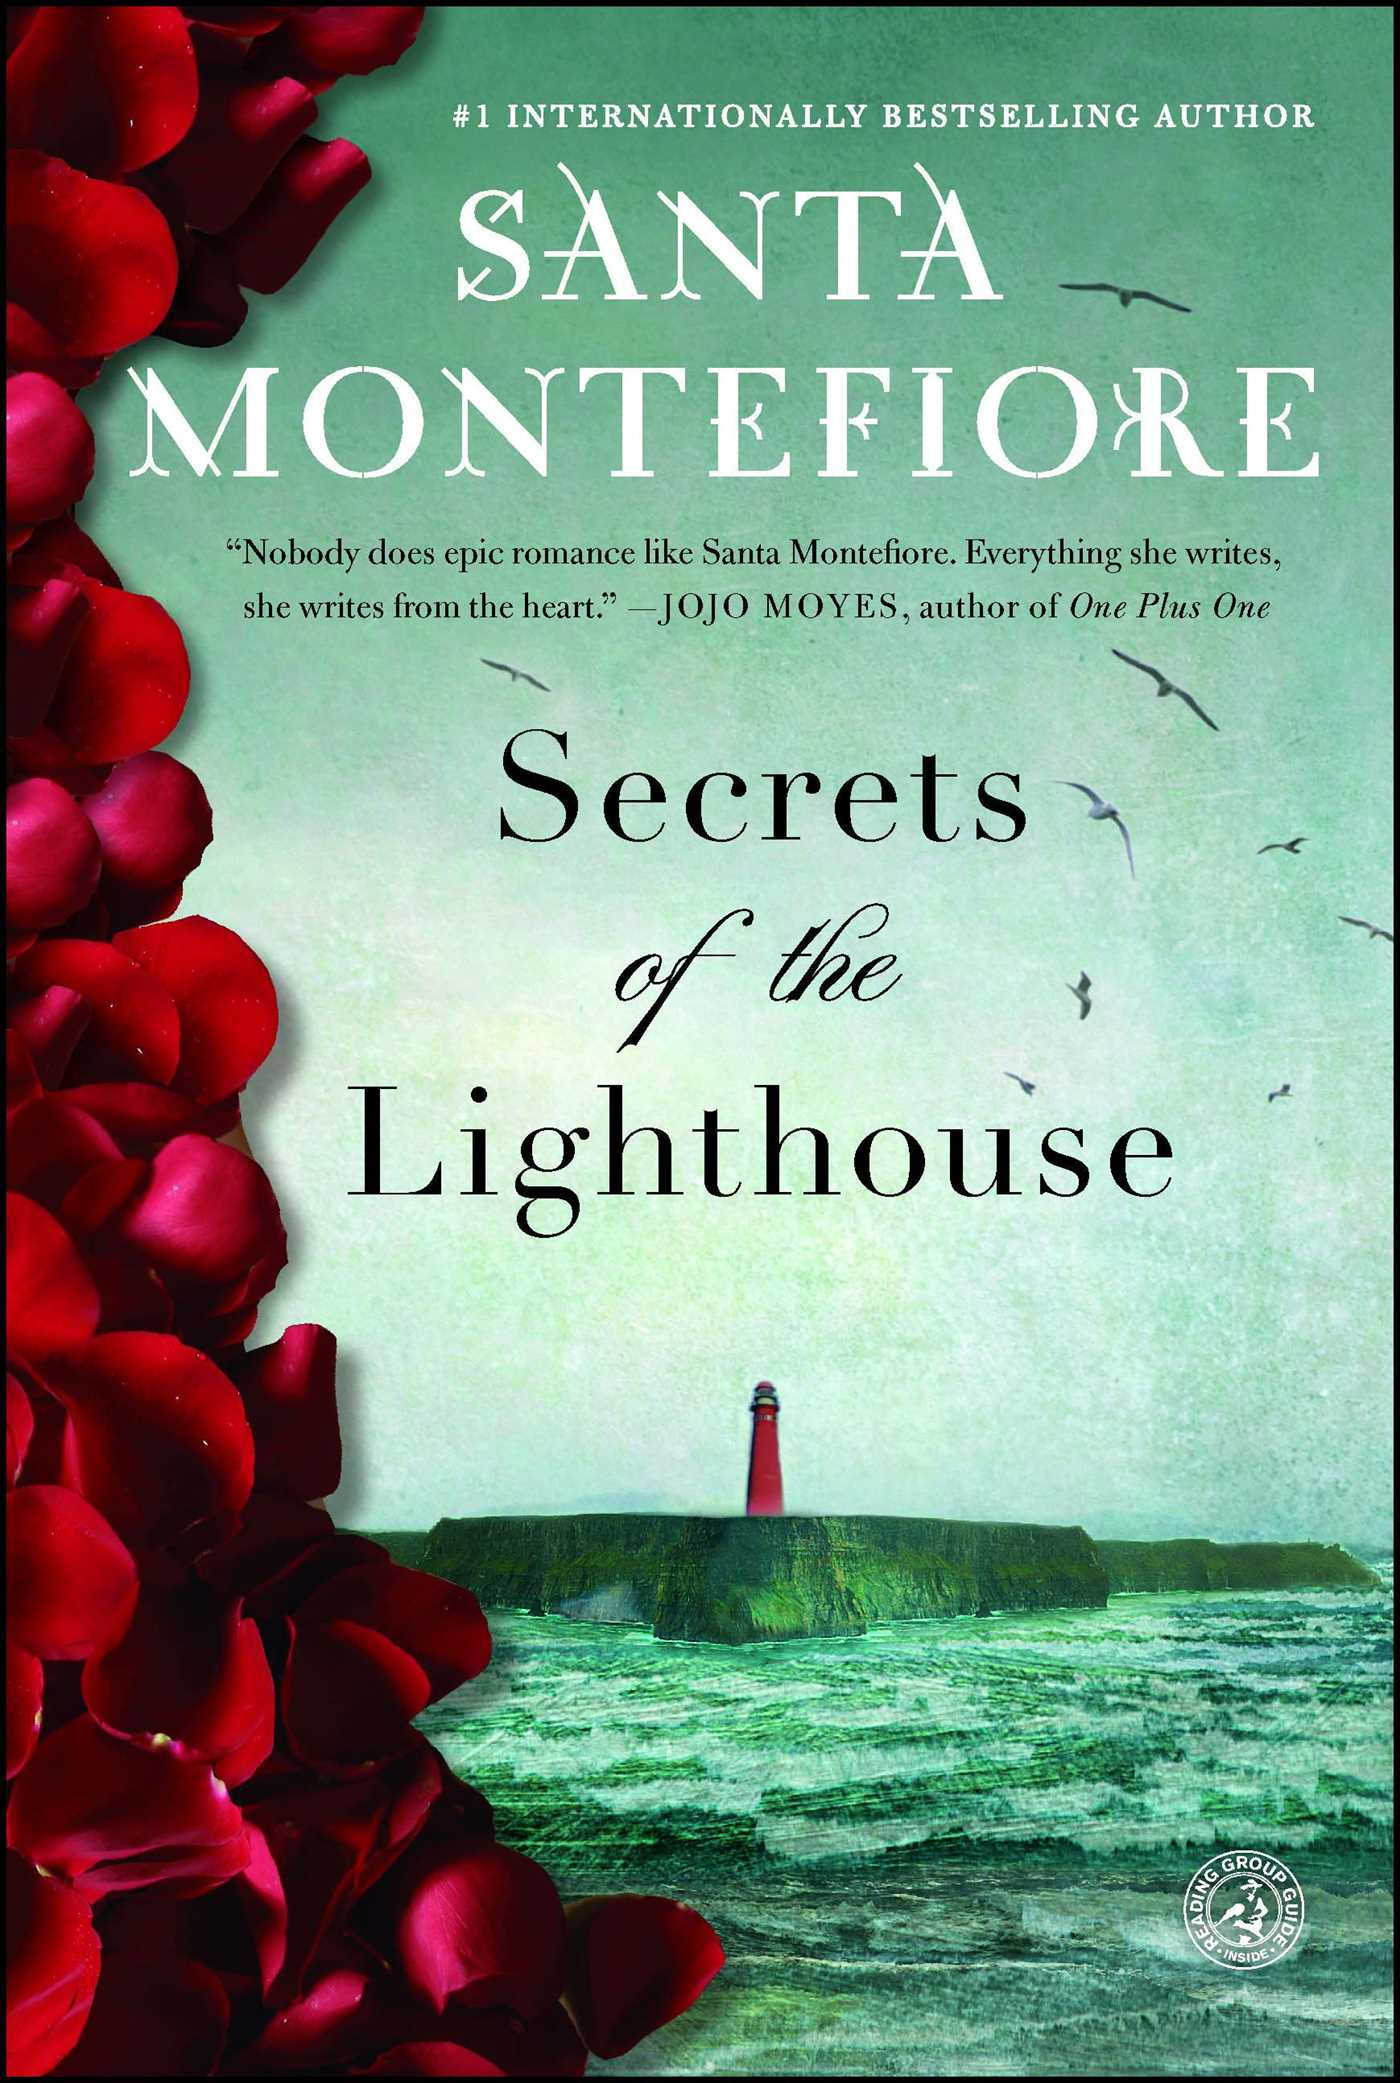 Secrets of the lighthouse 9781476735382 hr